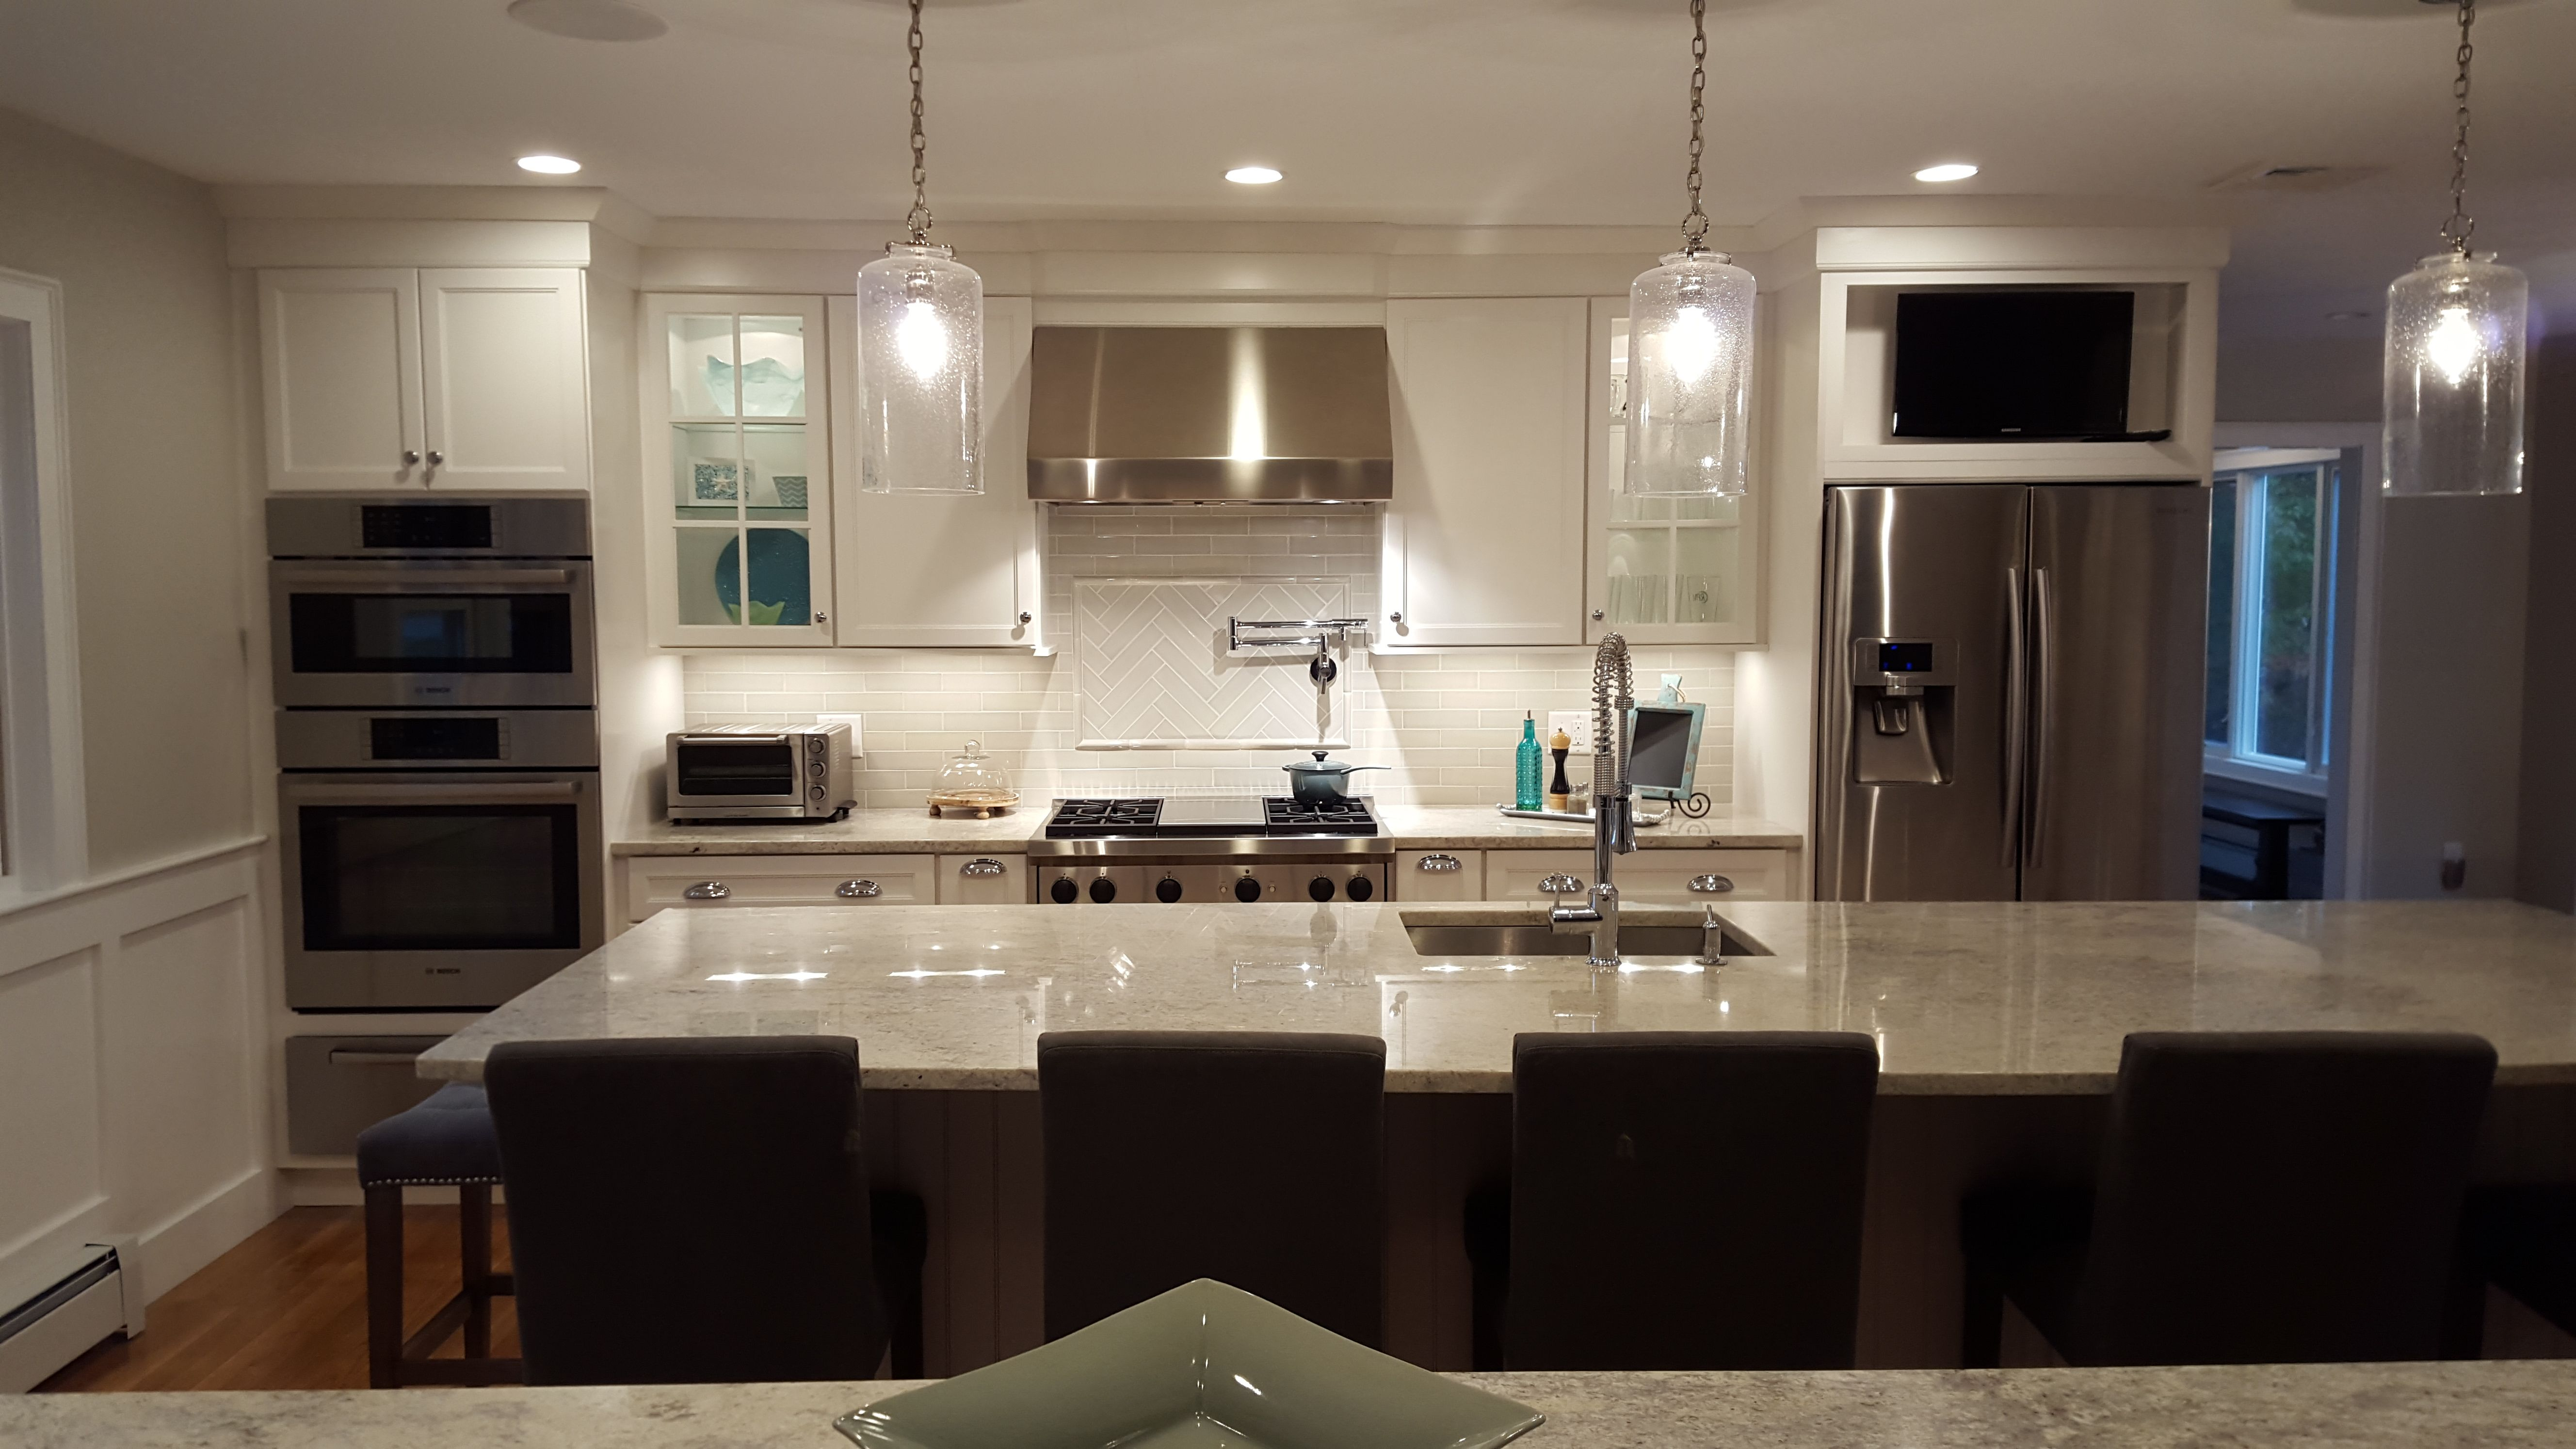 cabinet review kitchen instacabinets reflections diamond pw flewov cabinets us